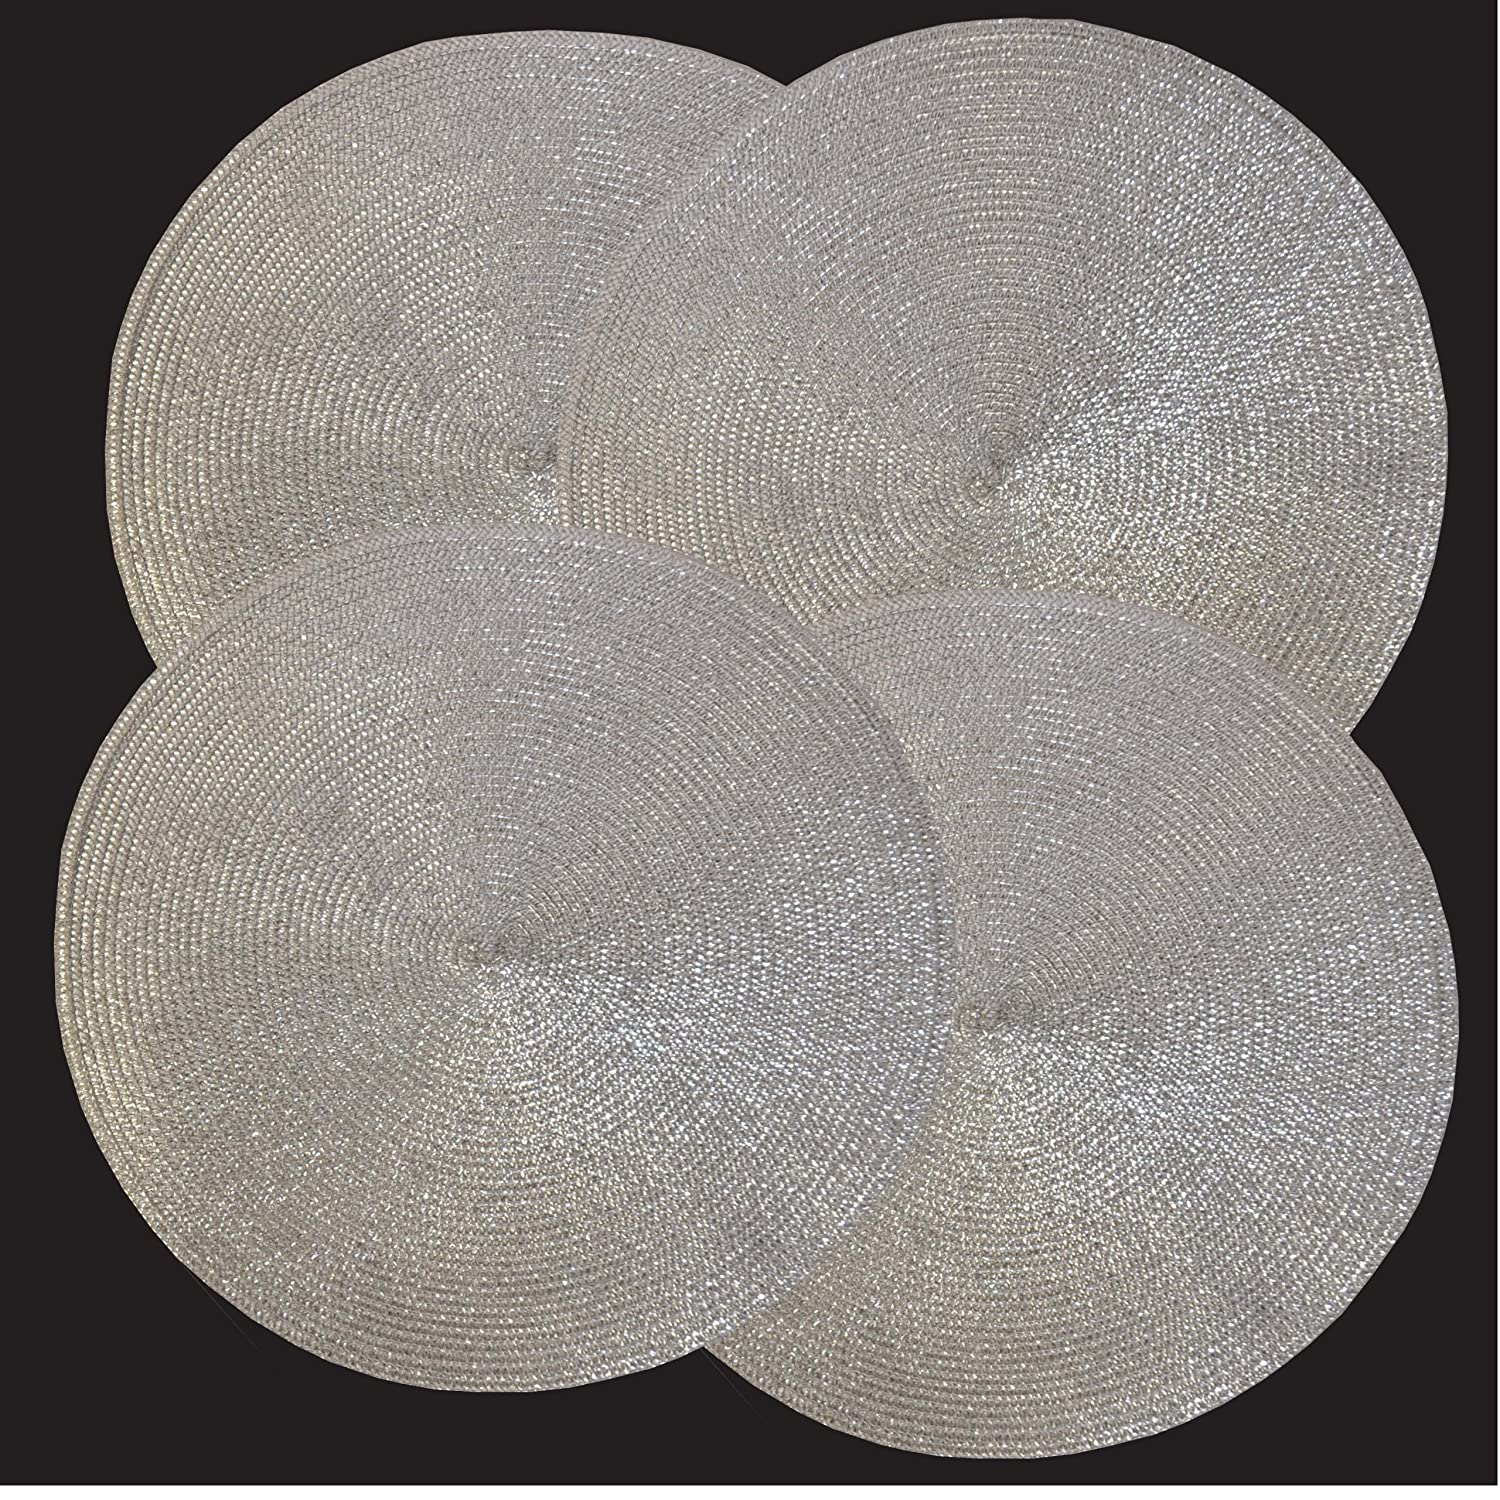 Holiday Shiny Round Table Placemats, Silver/gold Color. #96 006 (Silver):  Home U0026 Kitchen